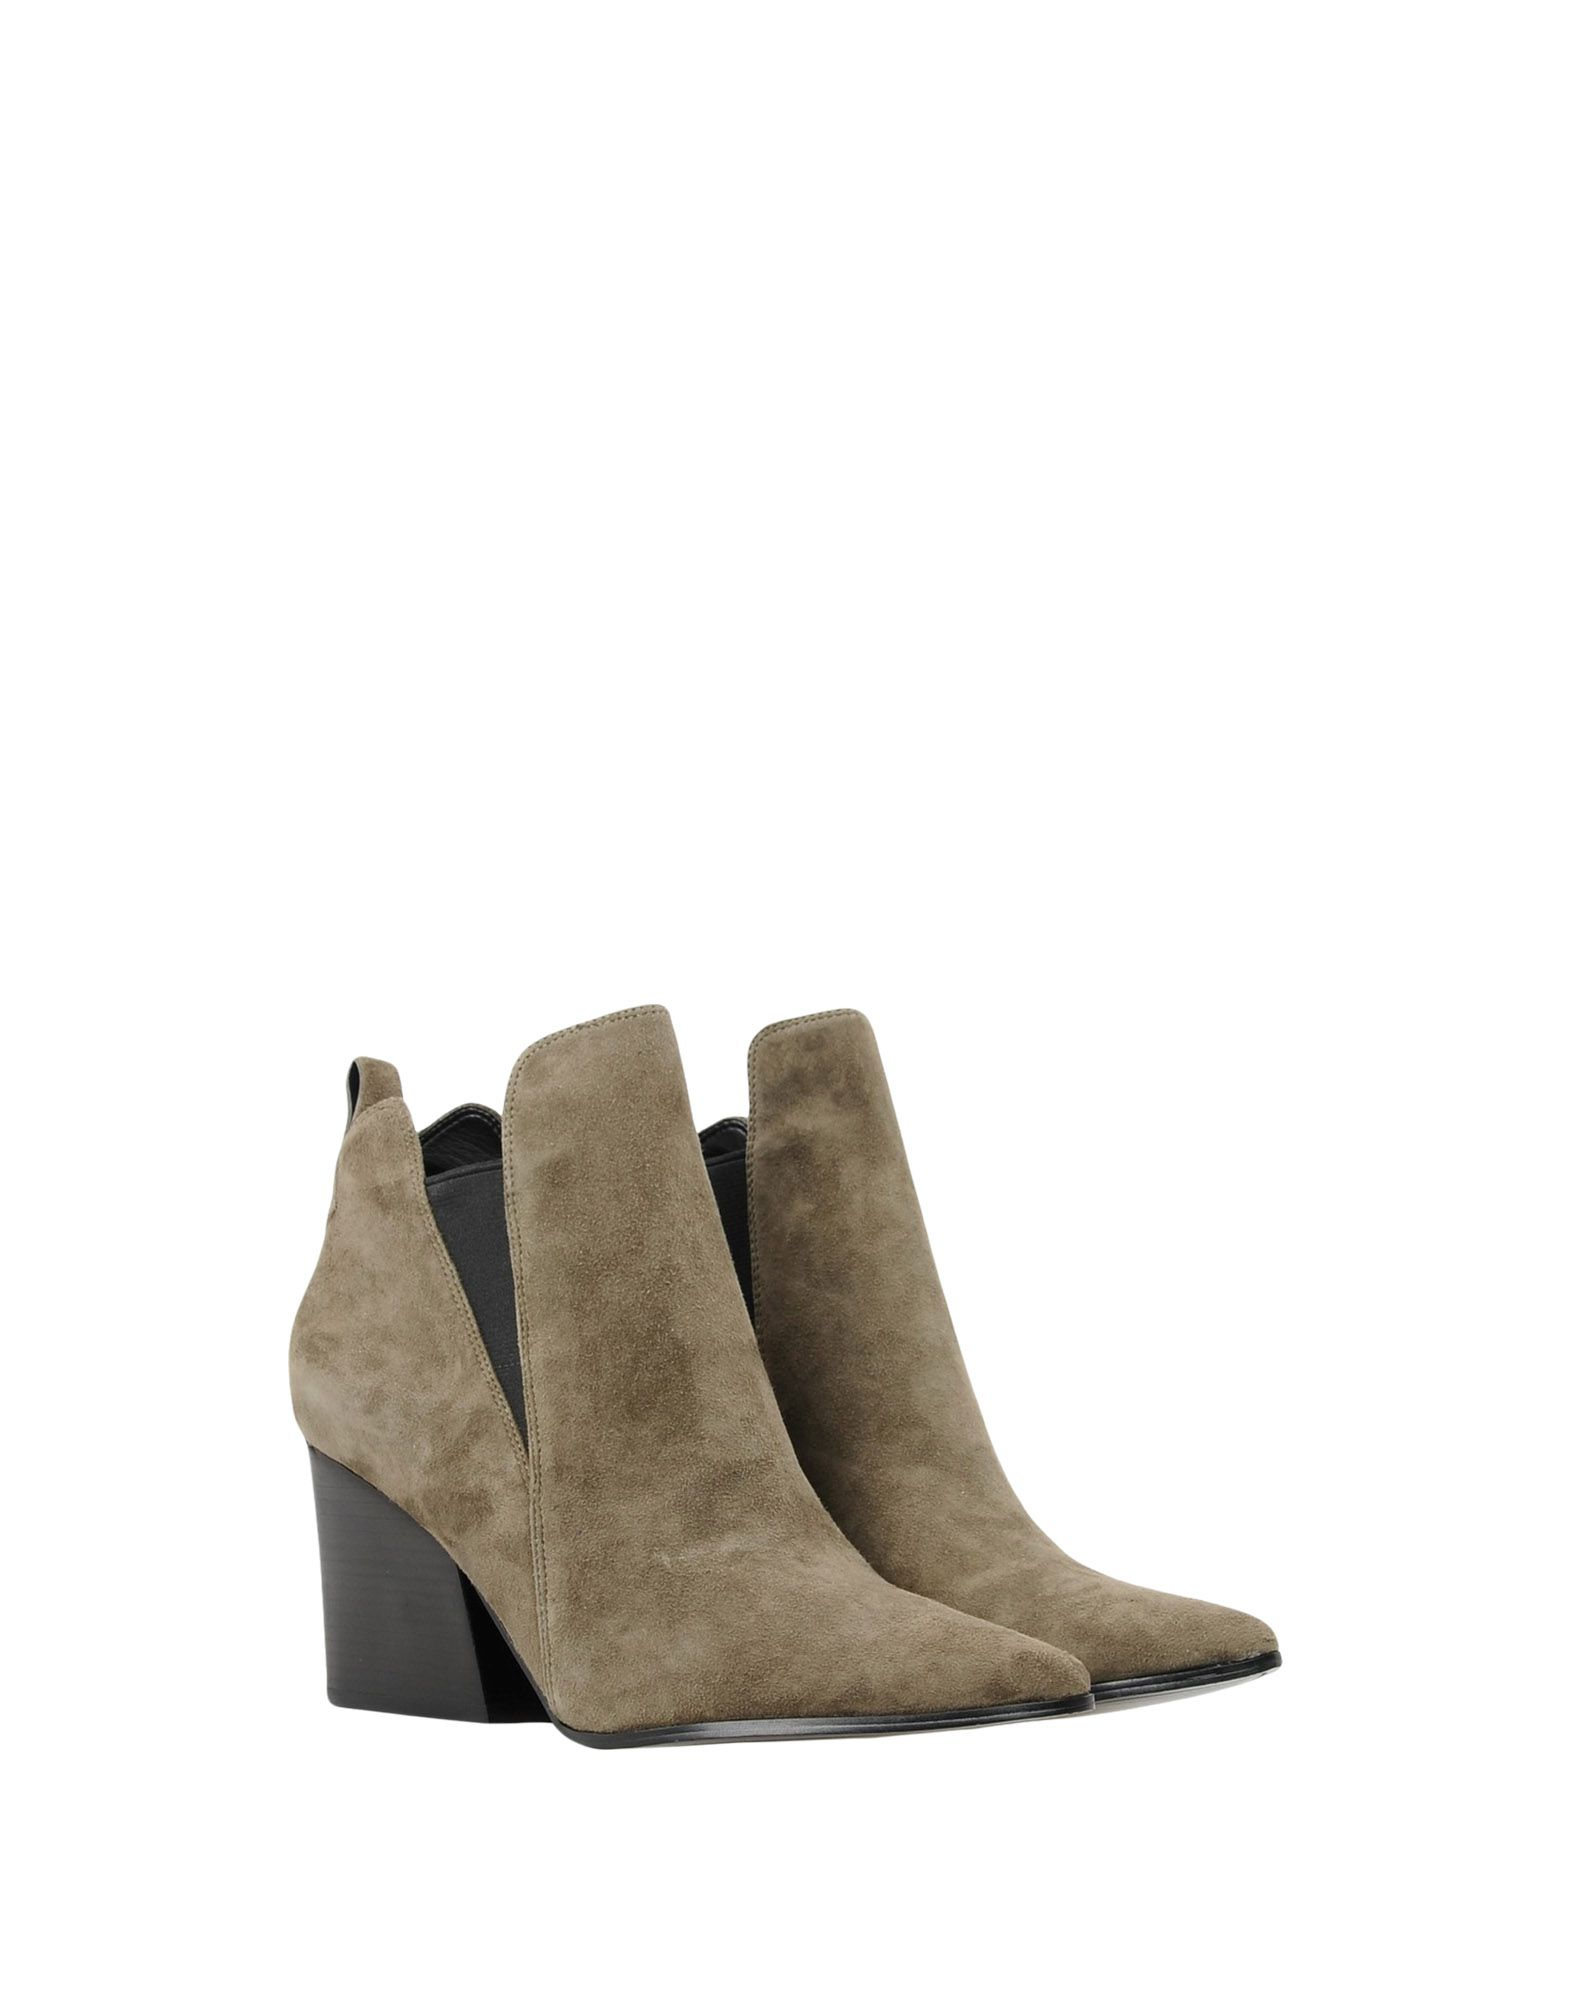 Kendall + Women Kylie Ankle Boot - Women + Kendall + Kylie Ankle Boots online on  United Kingdom - 11324182PB 0d28fd